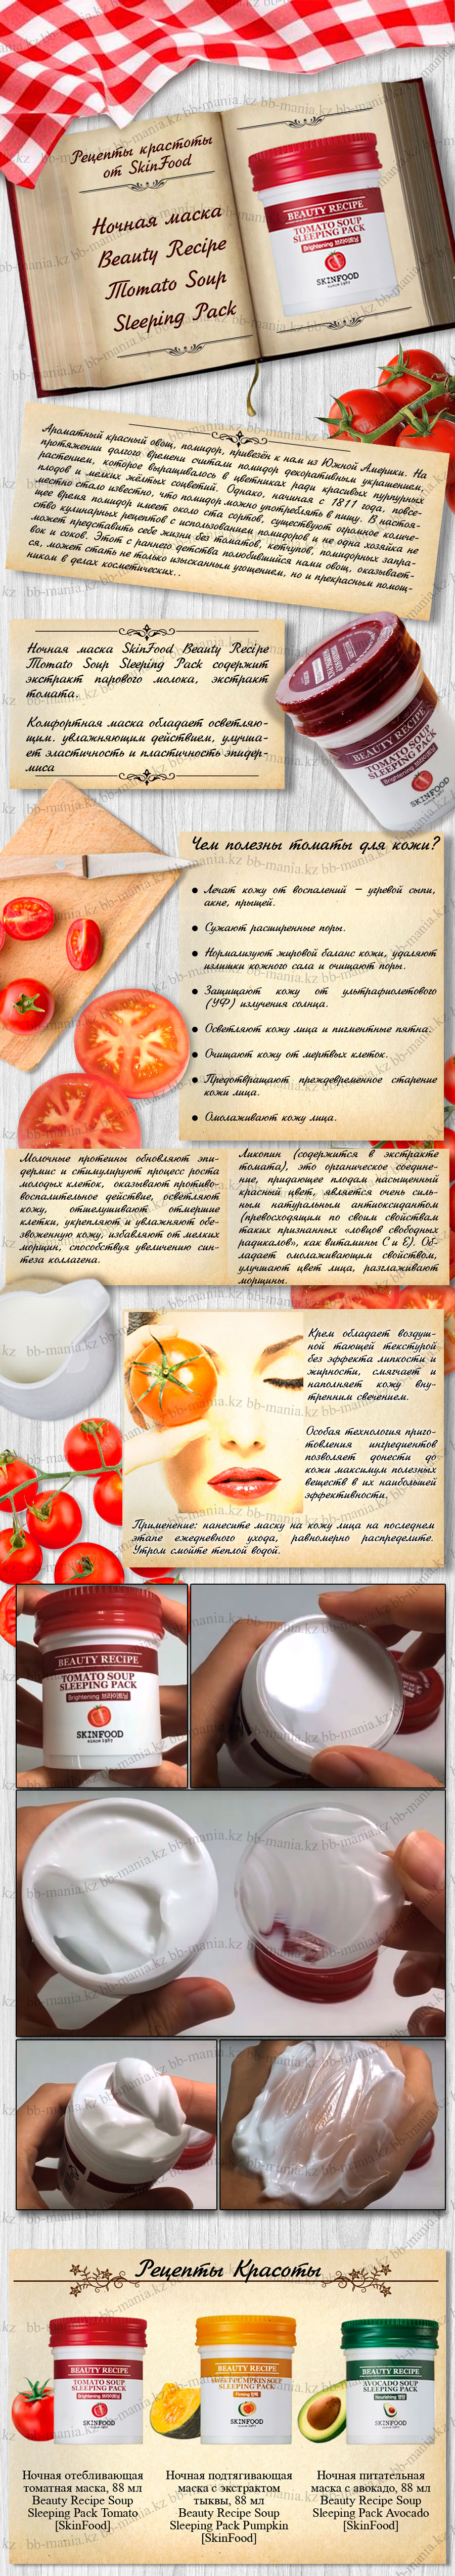 Beauty-Recipe-Soup-Sleeping-Pack-Tomato-[SkinFood]-min